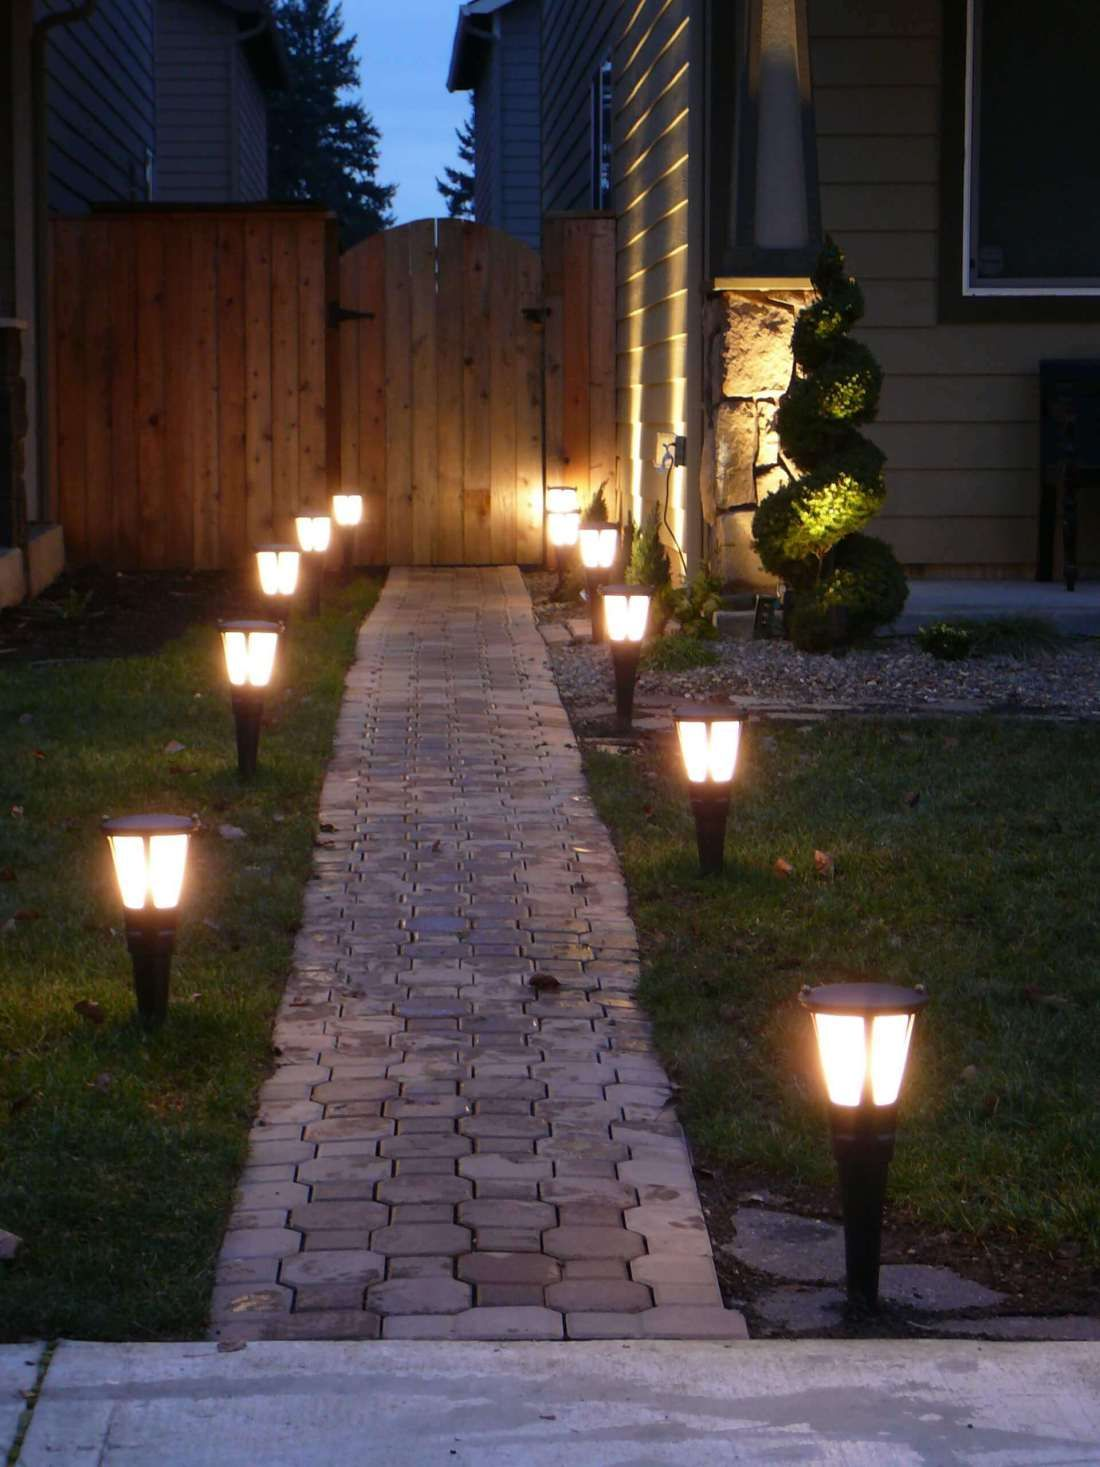 Modern Outdoor Lightning As Illuminating Decoration For Awesome Exterior: 25+ Awesome Backyard Lighting Ideas For Your Home 2020